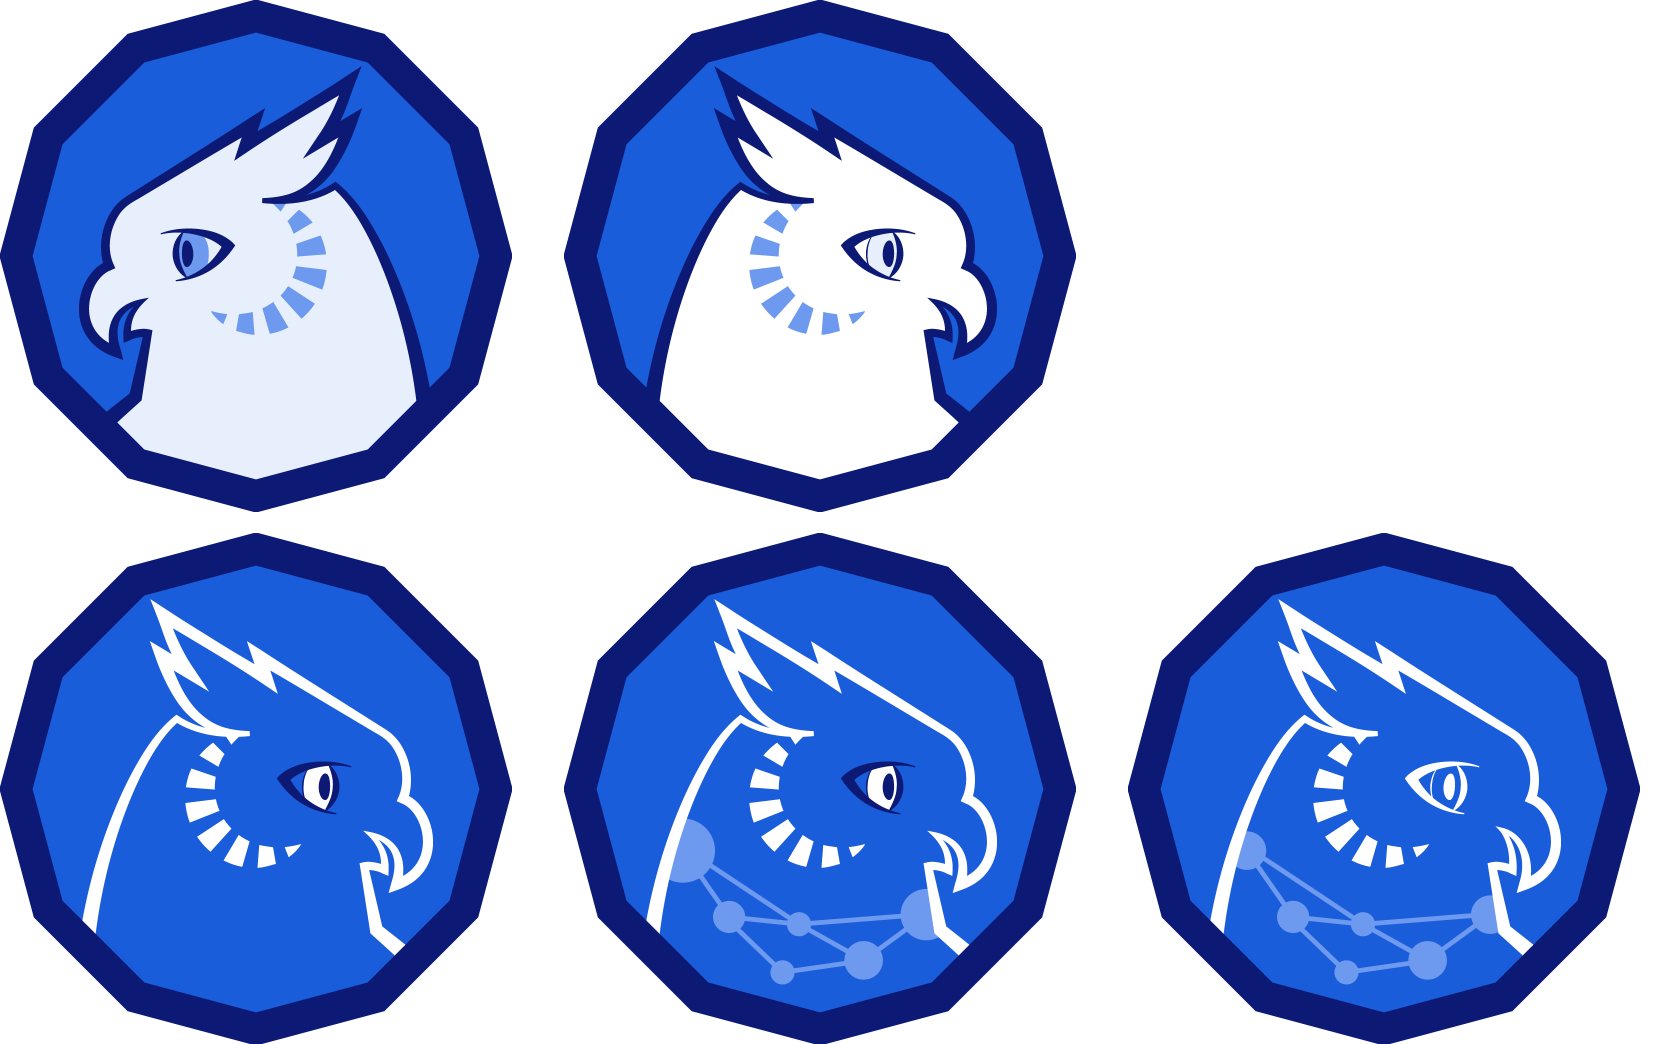 Five different versions of an illustrated owl: Two owls are white and facing opposite directions; the other three owls have various features including a network around their next and facial disks.